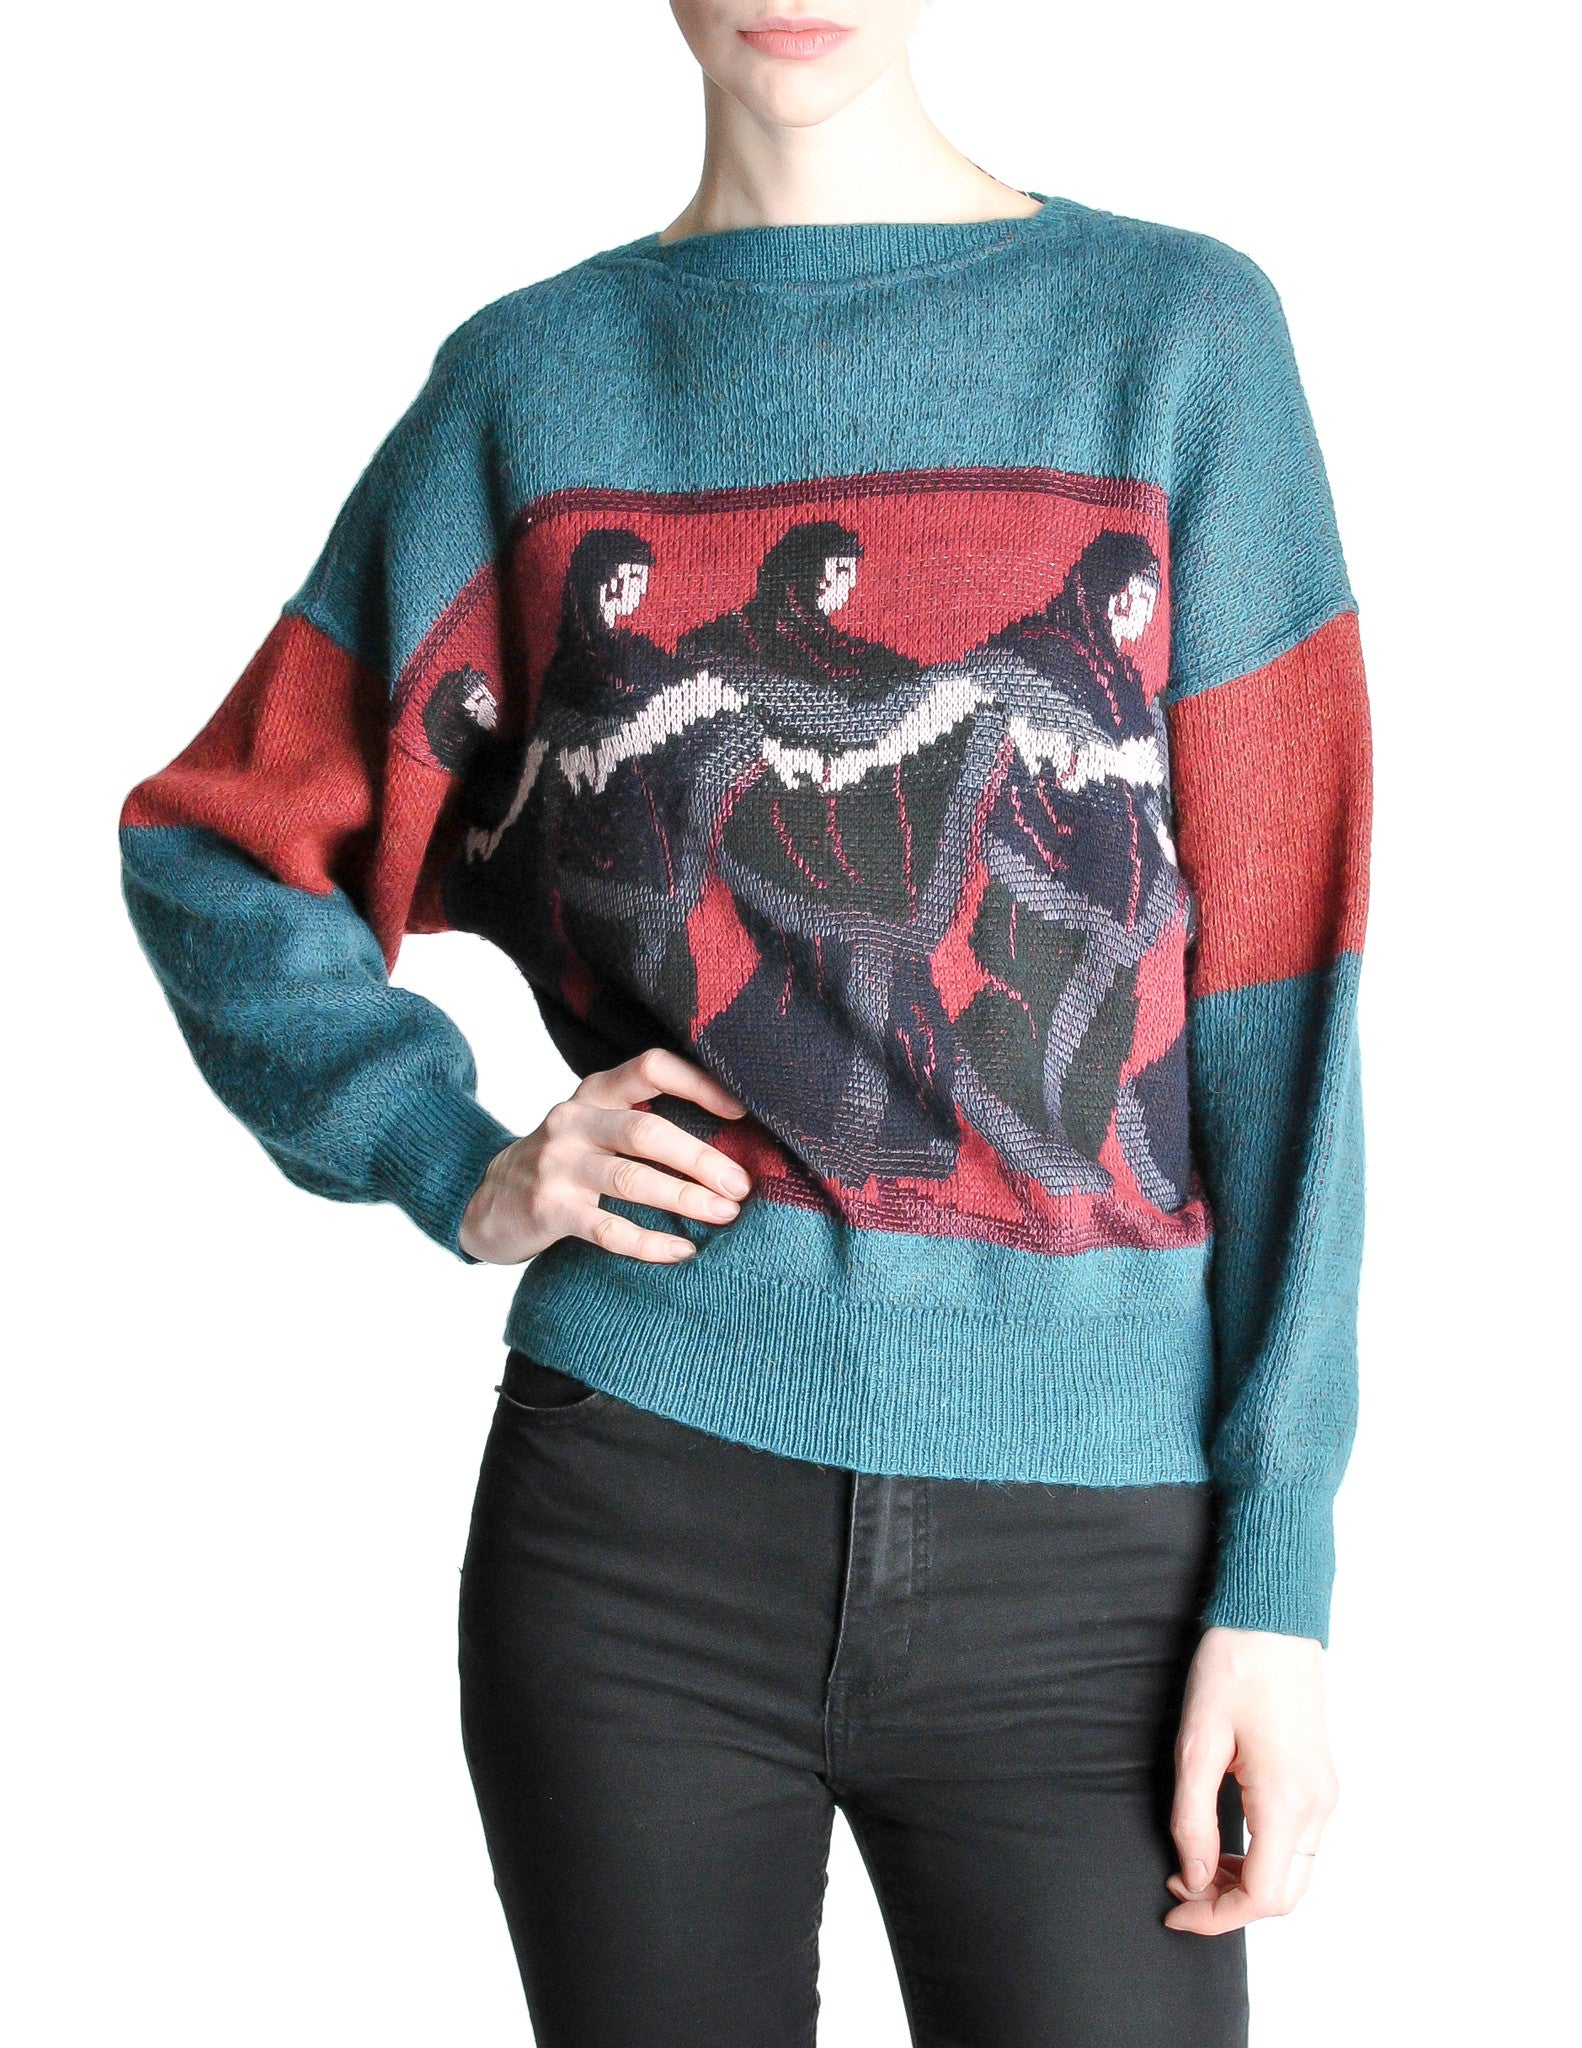 Versace Vintage 'Walk Like An Egyptian' Sweater - Amarcord Vintage Fashion  - 1